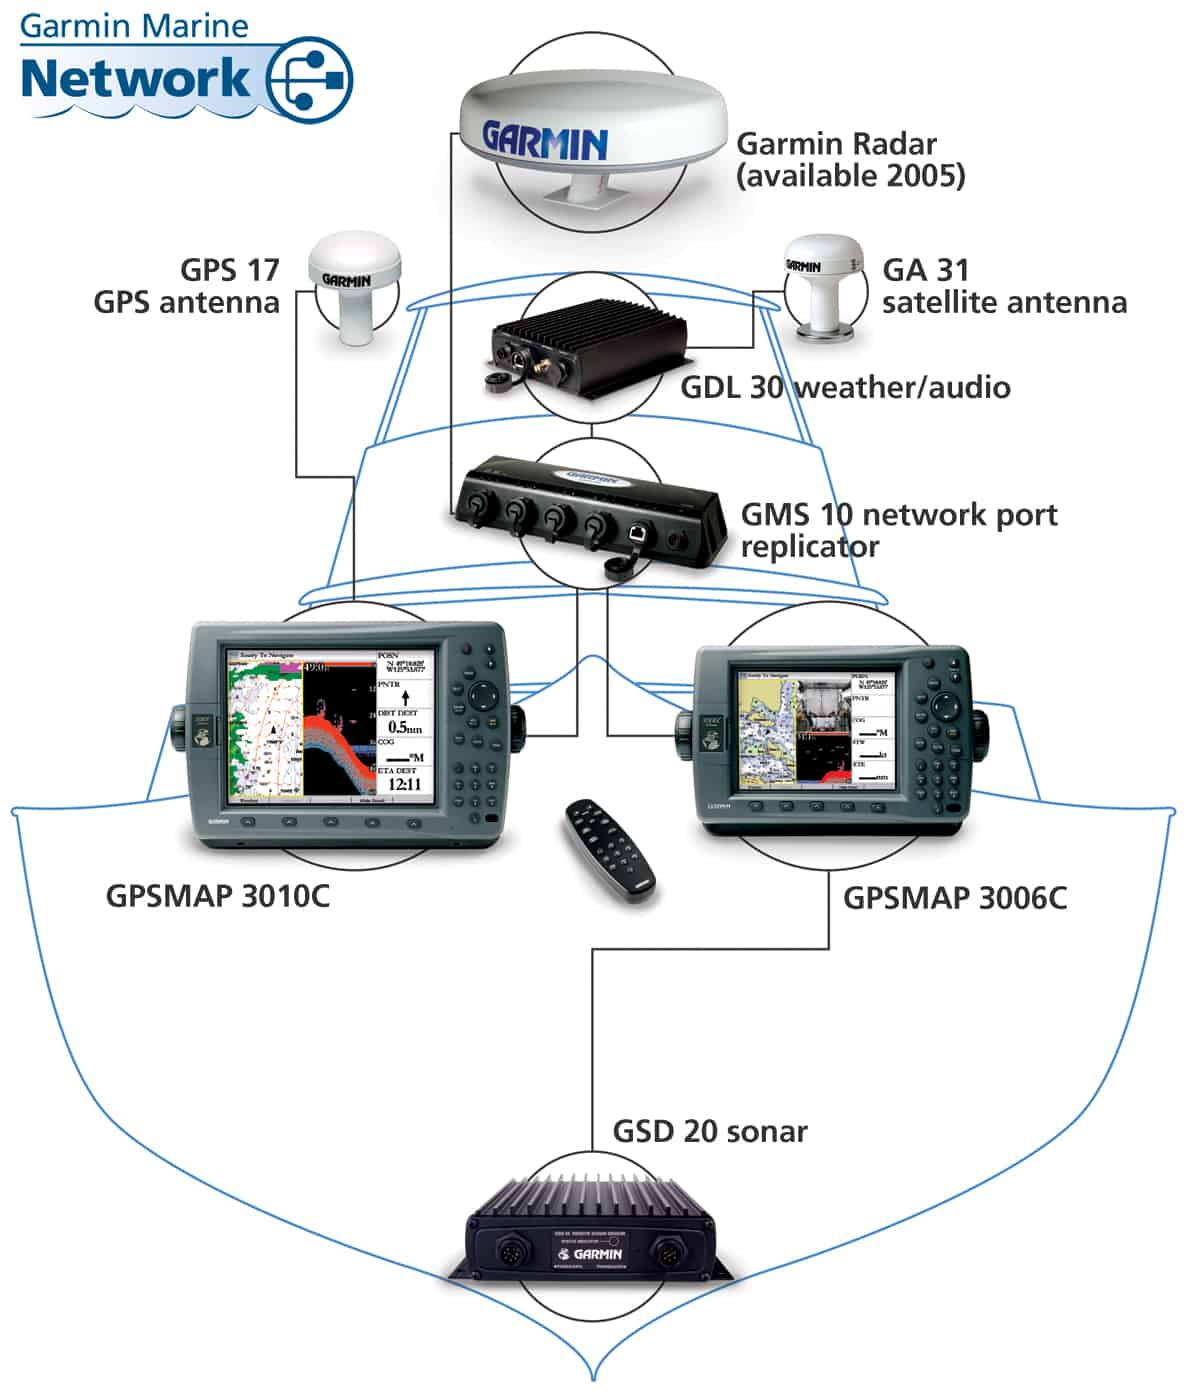 Garmin Gps 2006c Wiring Diagram - Automotive Wiring Diagram • on garmin usb wiring, garmin speedometer, data mapping diagram, atx connector diagram, garmin network cable wiring, garmin 3010c wiring, garmin sensor,